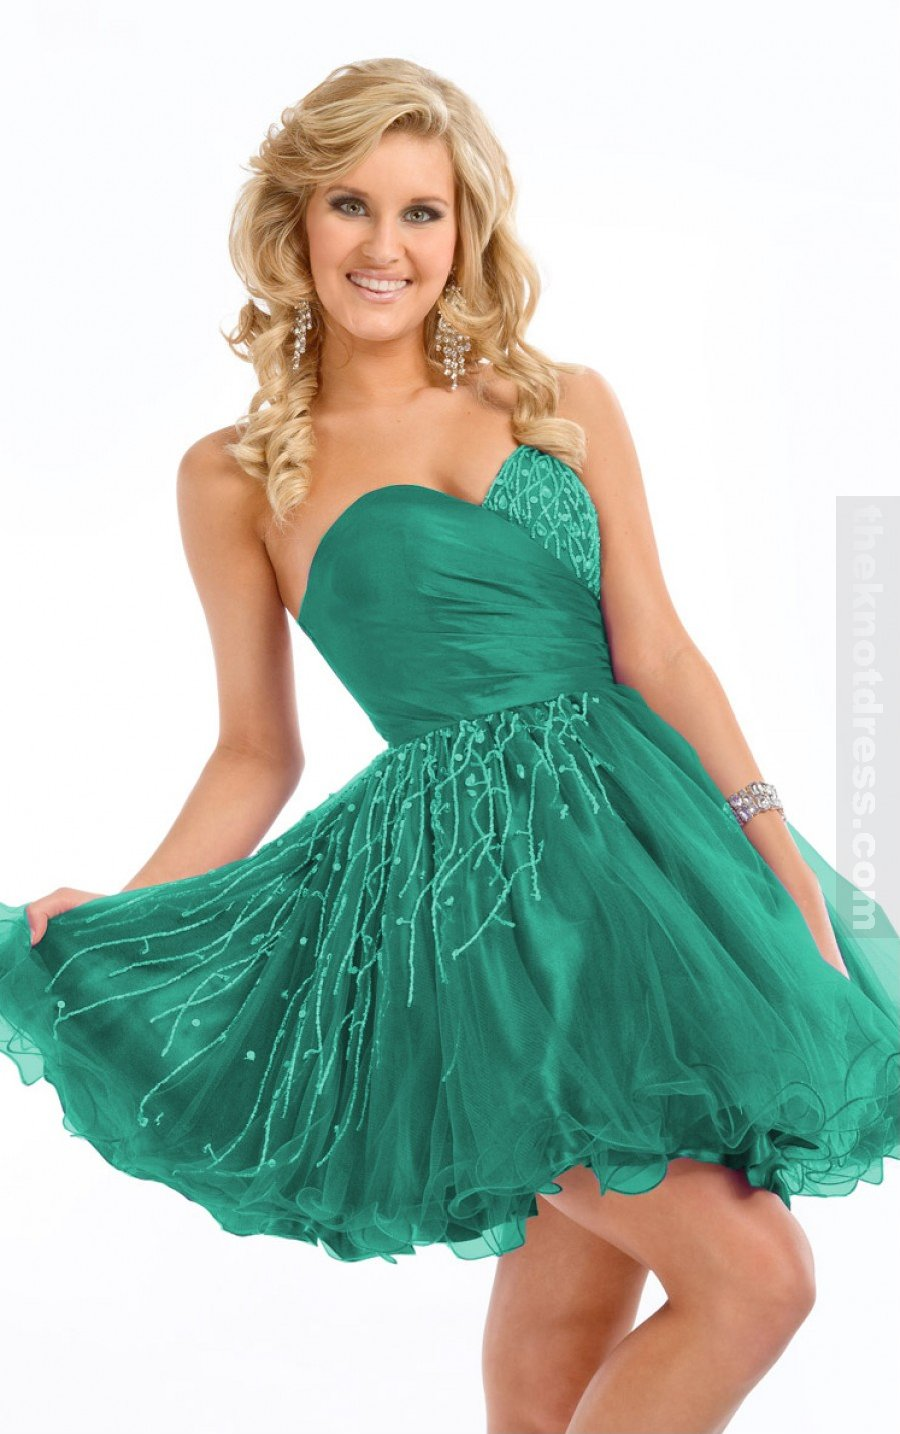 Dark Green Princess Knee-length Sweetheart Dress, Cheap Party Dresses Uk